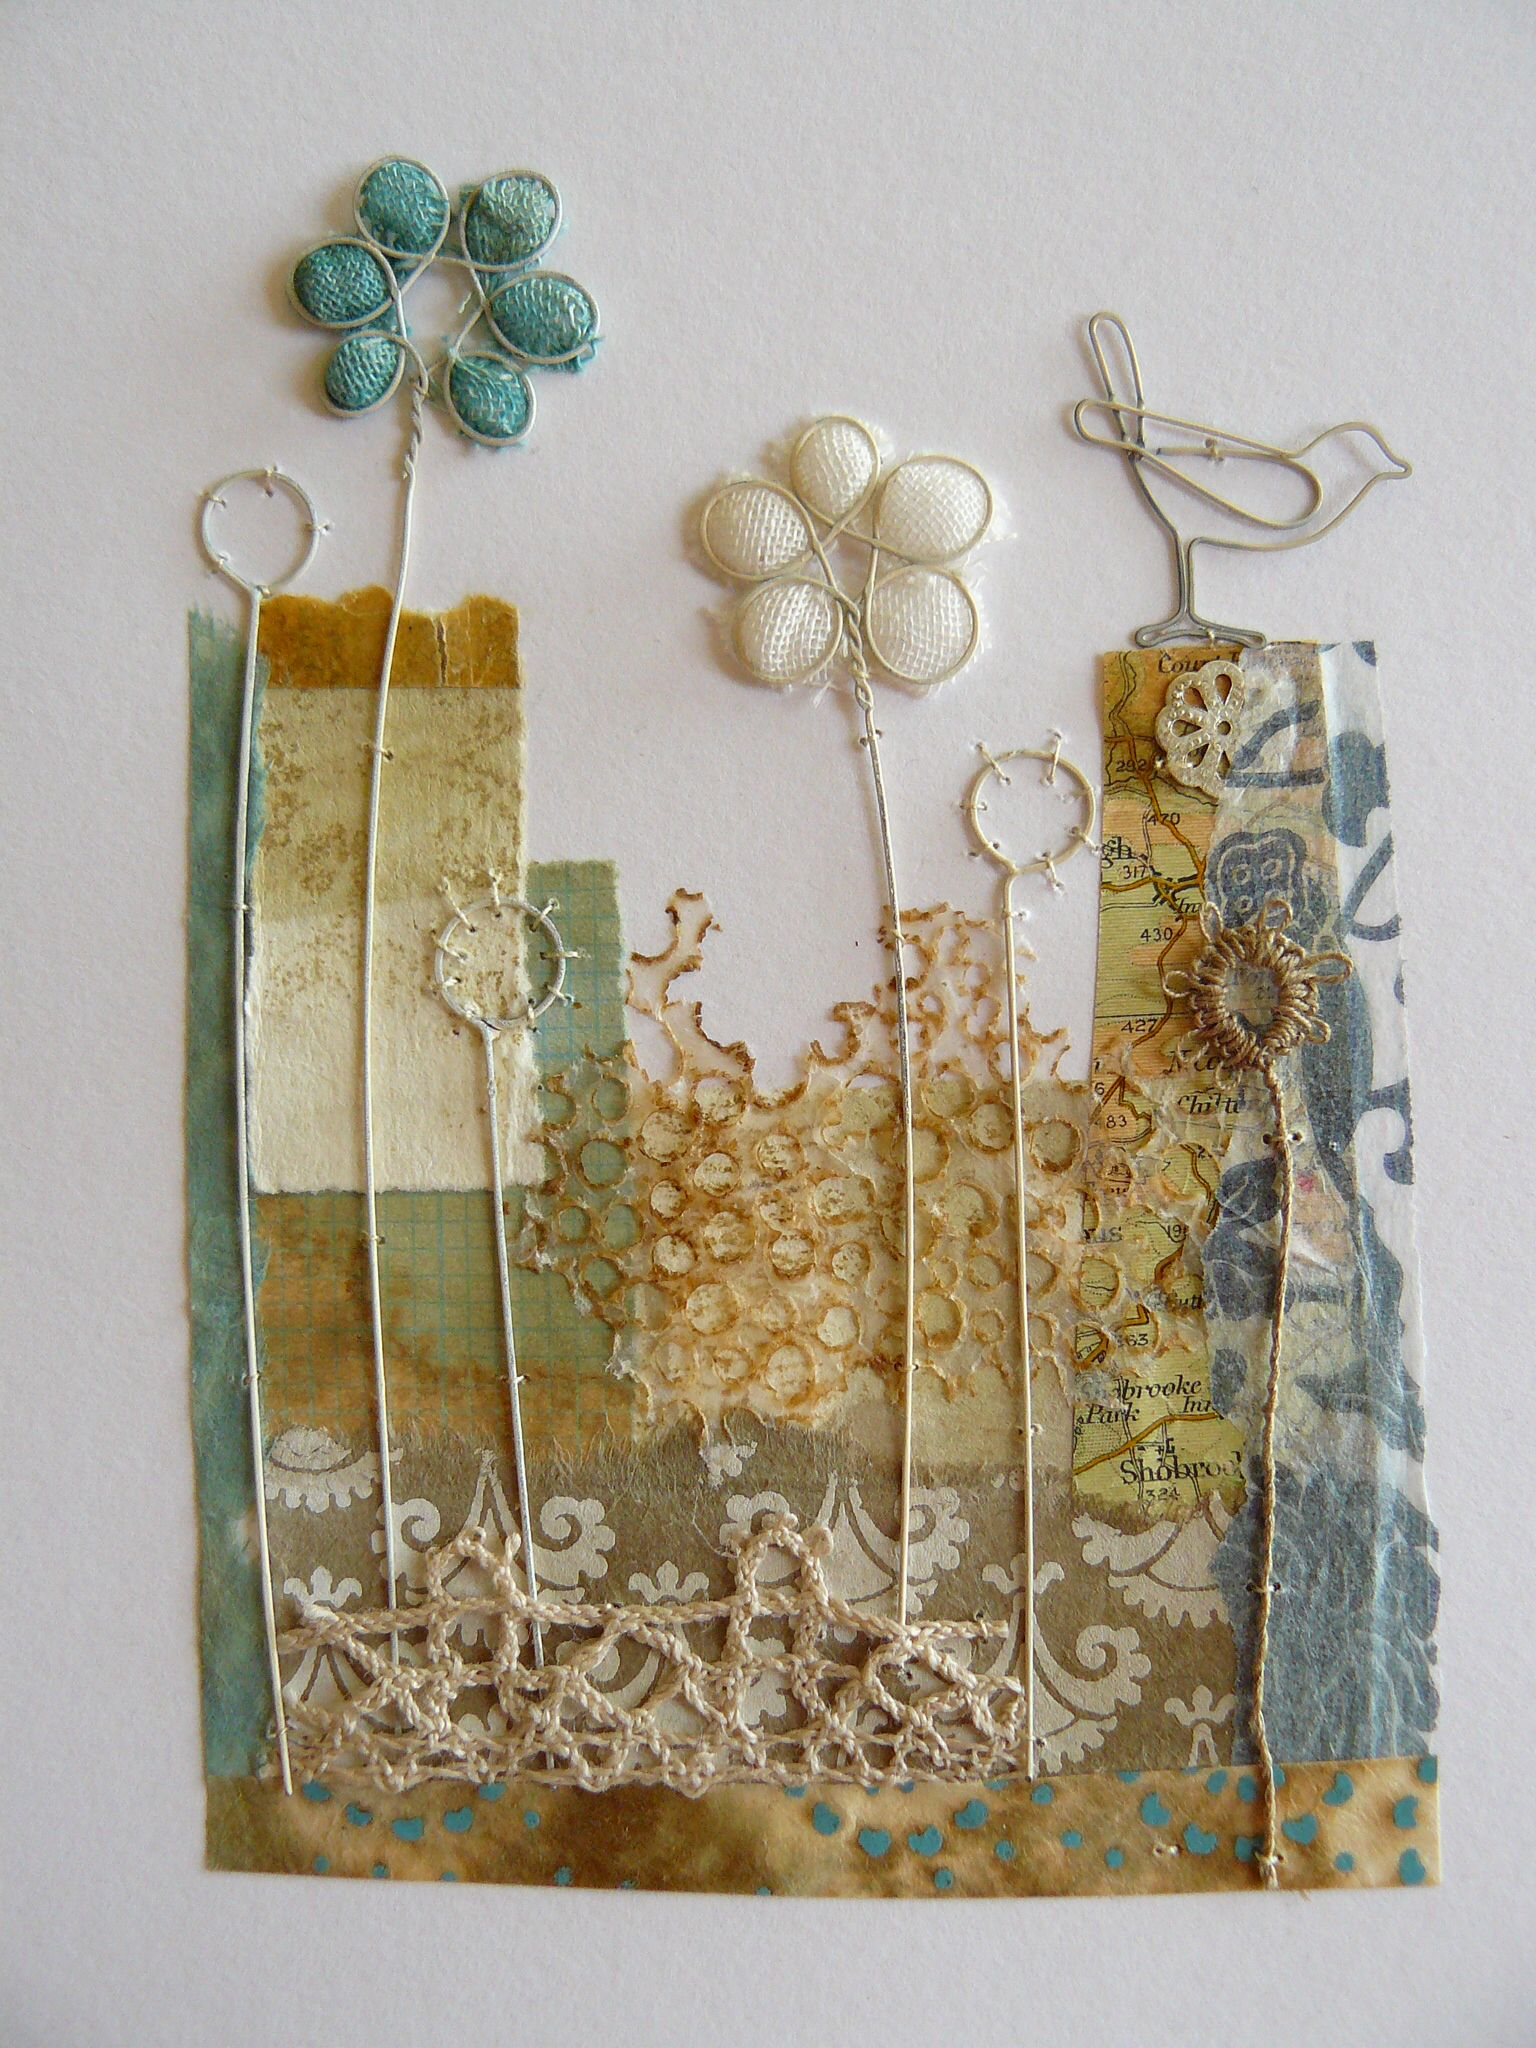 Print Paper Amp Stitch Use Of Lace And Stitch Bird Use